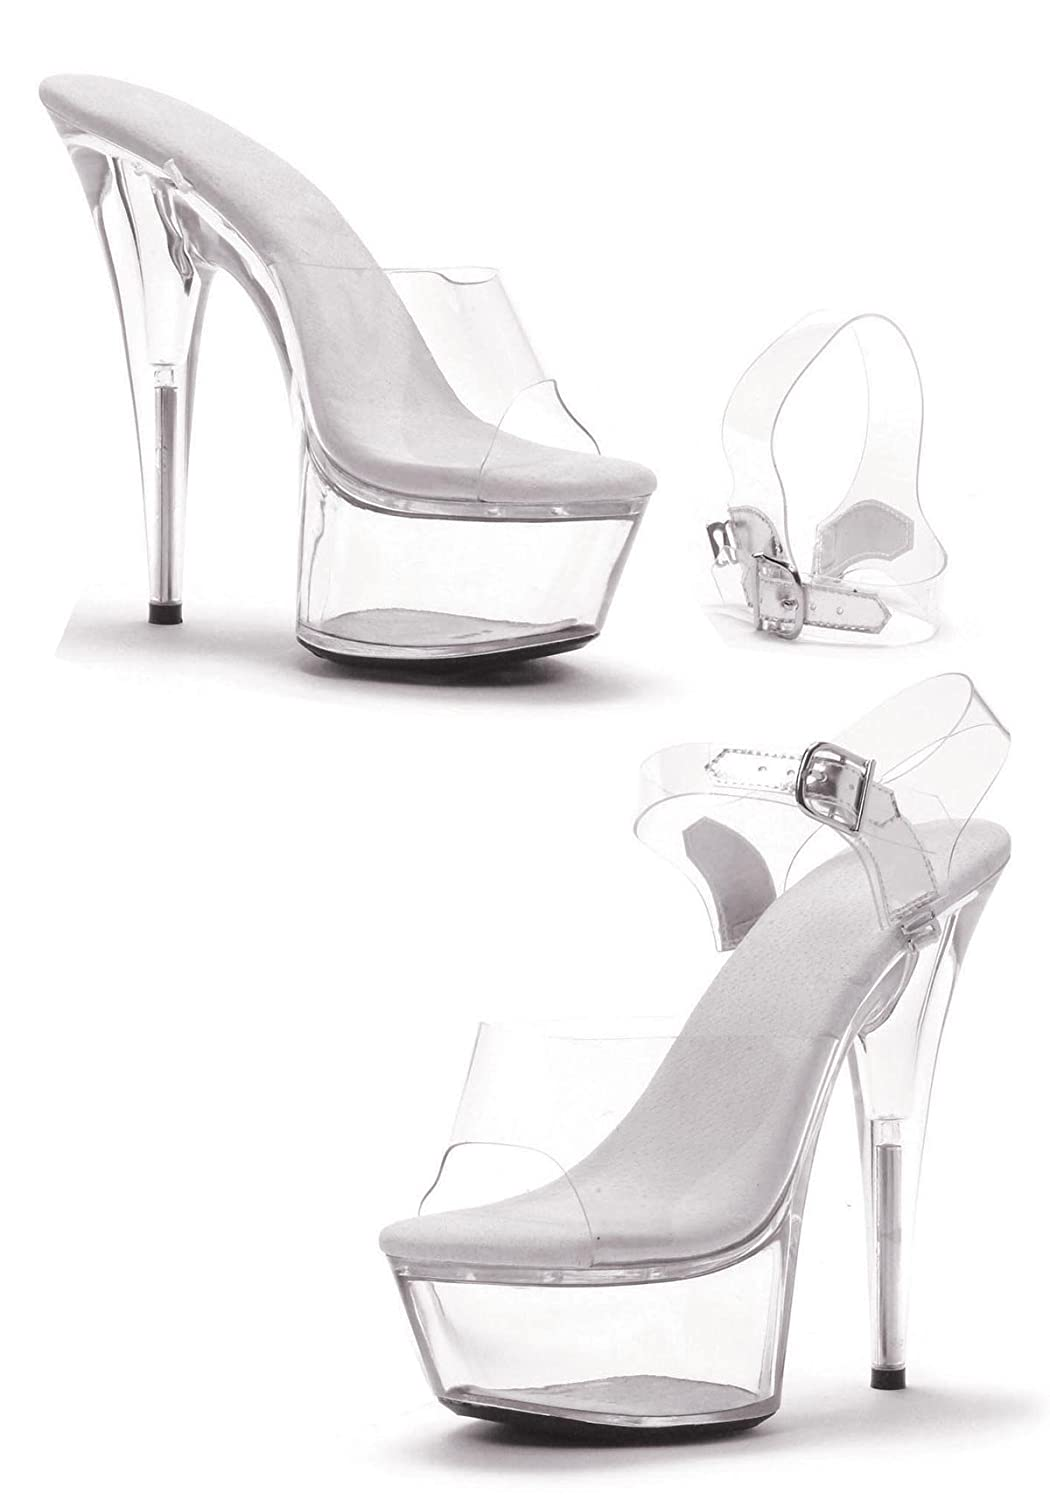 Ellie Shoes 6 Pointed Heel Stiletto W//Removable Ankle Strap.